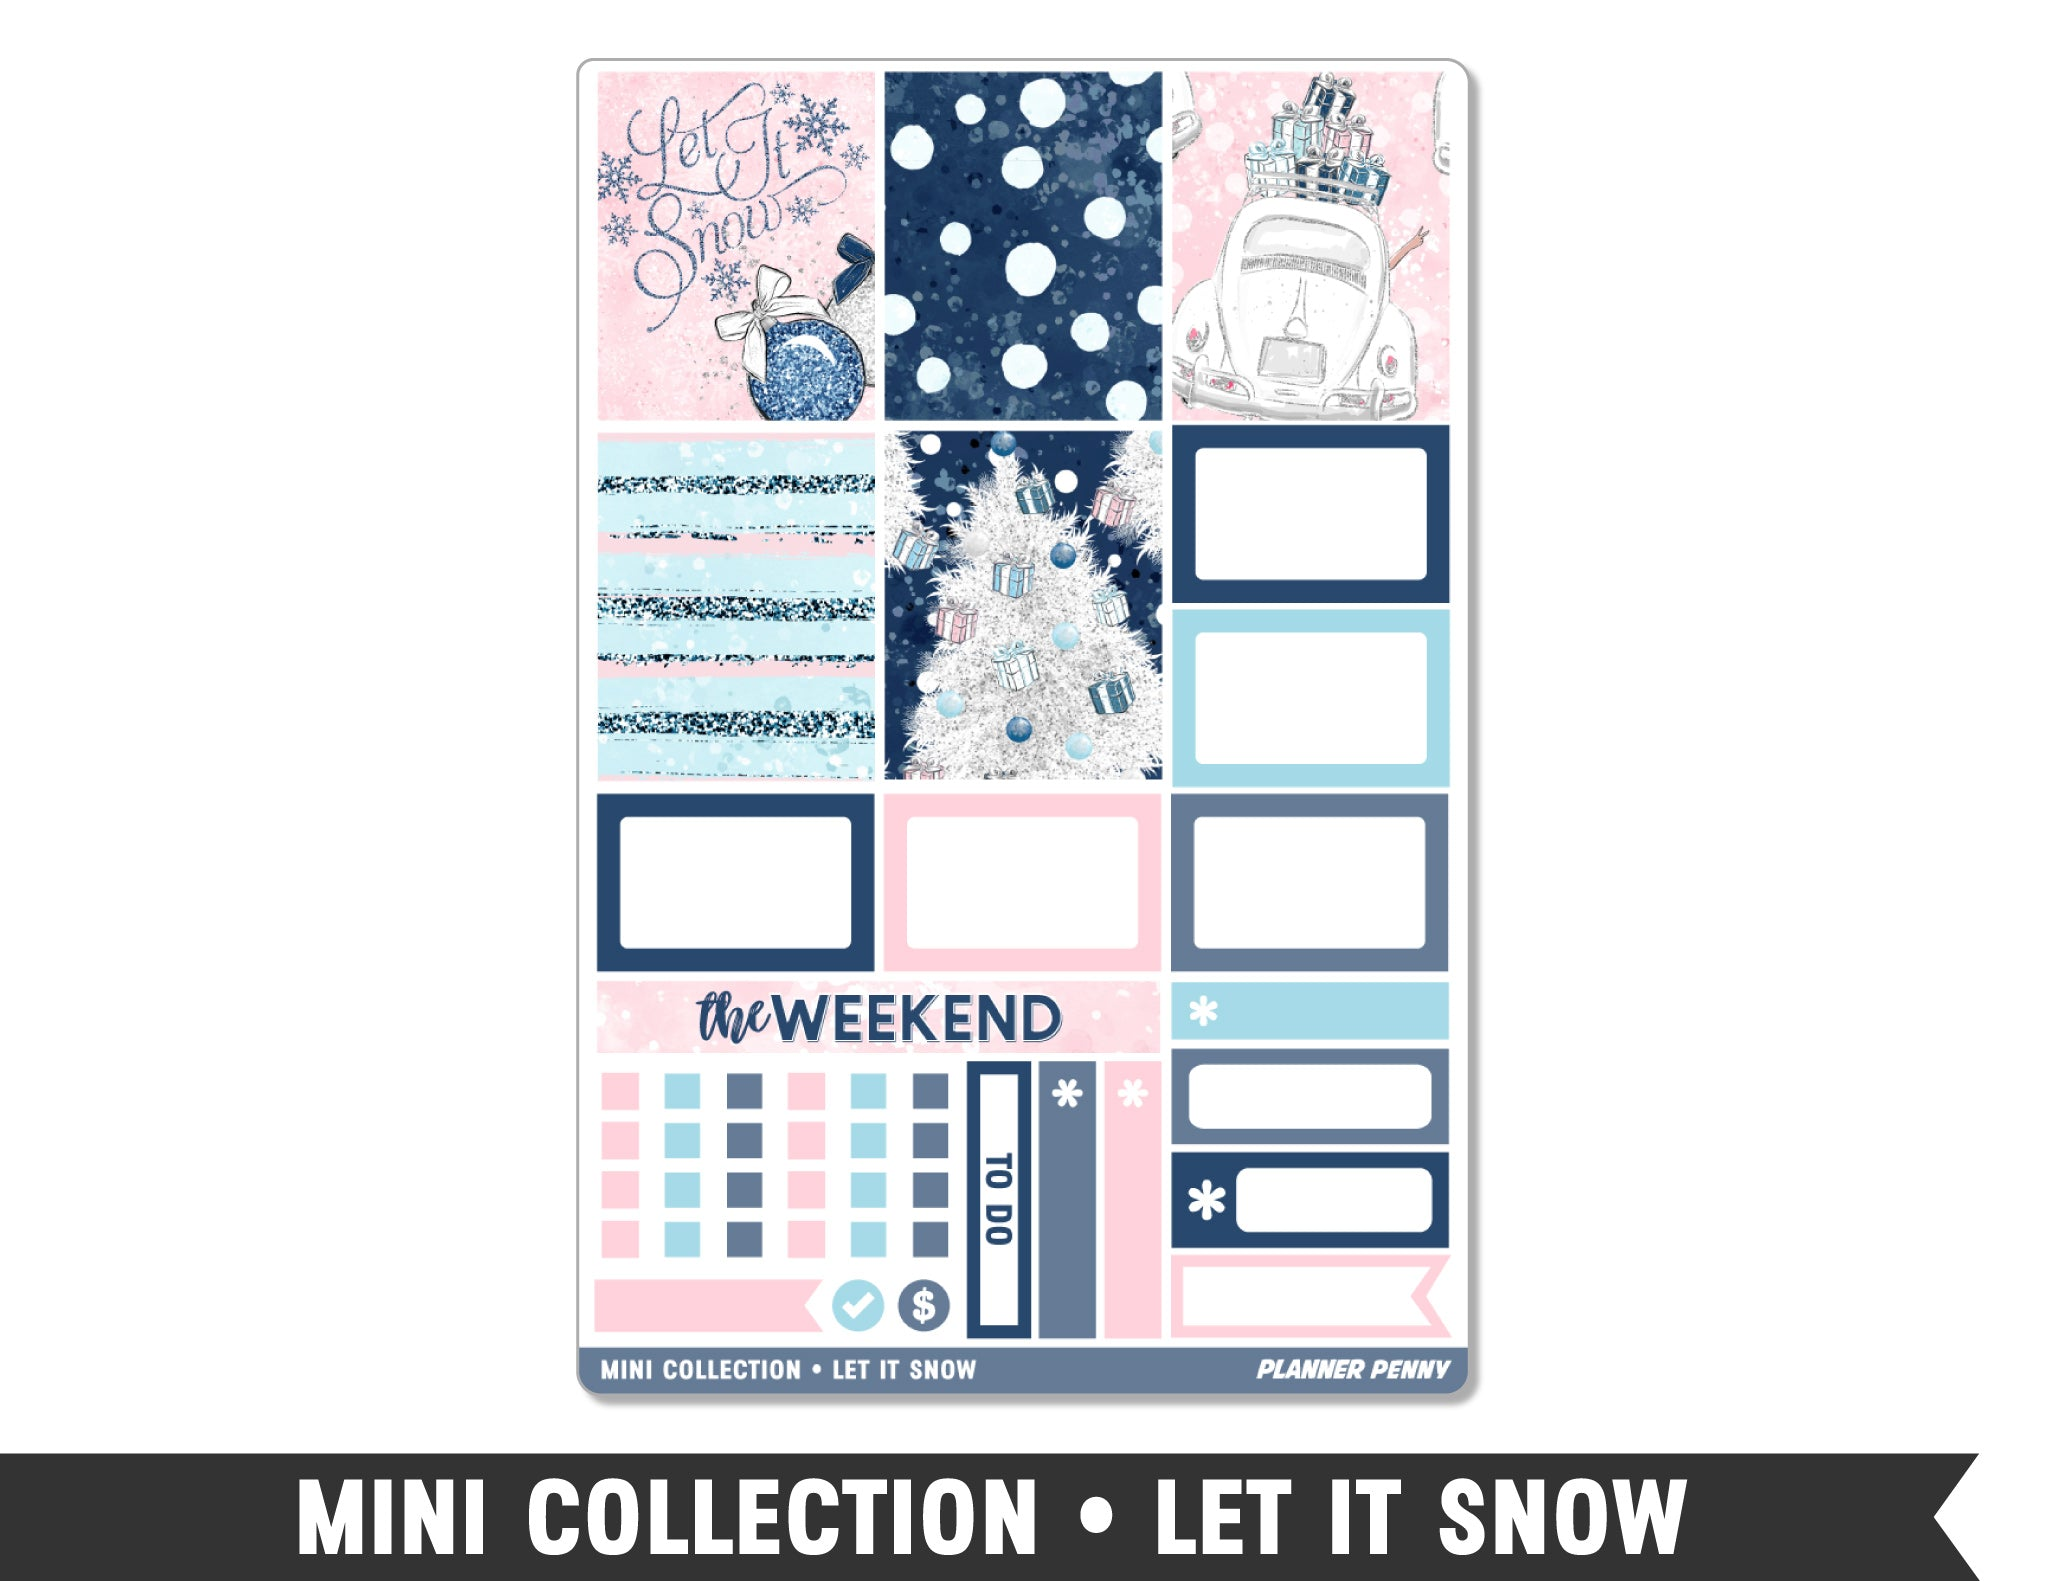 Mini Collection • Let It Snow • Weekly Spread Planner Stickers - Planner Penny